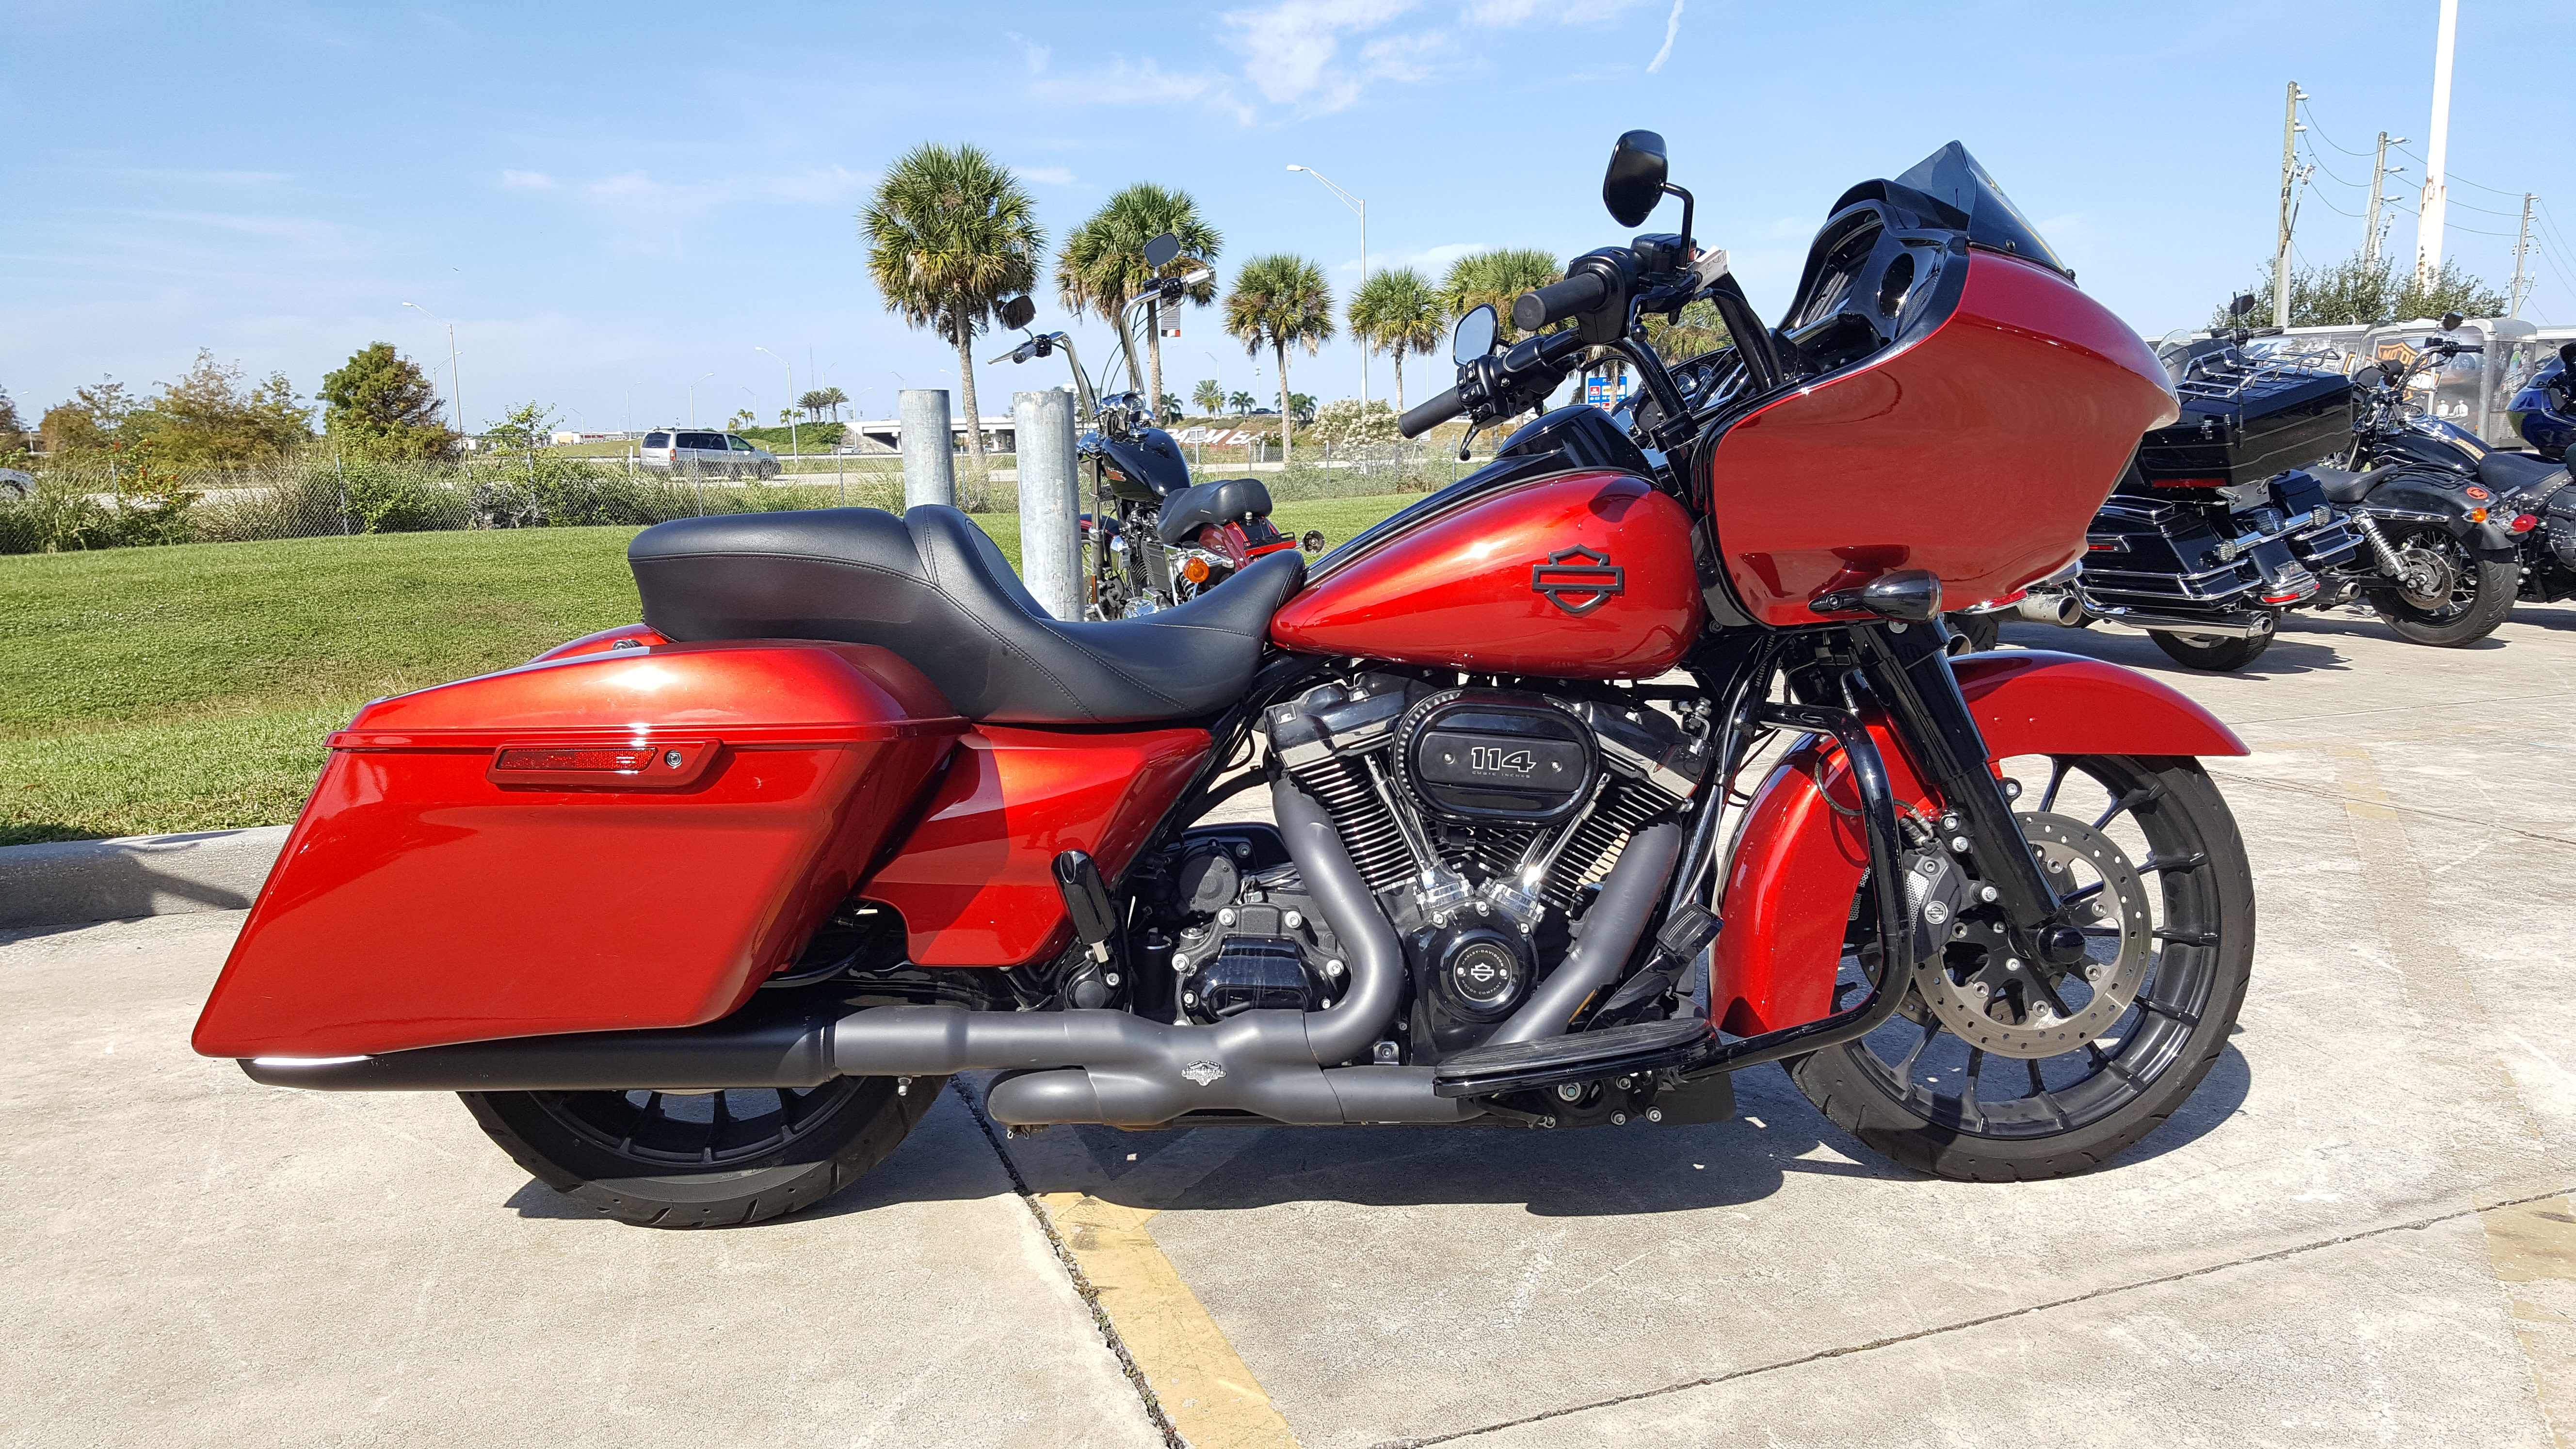 Pre-Owned 2018 Harley-Davidson Road Glide Special